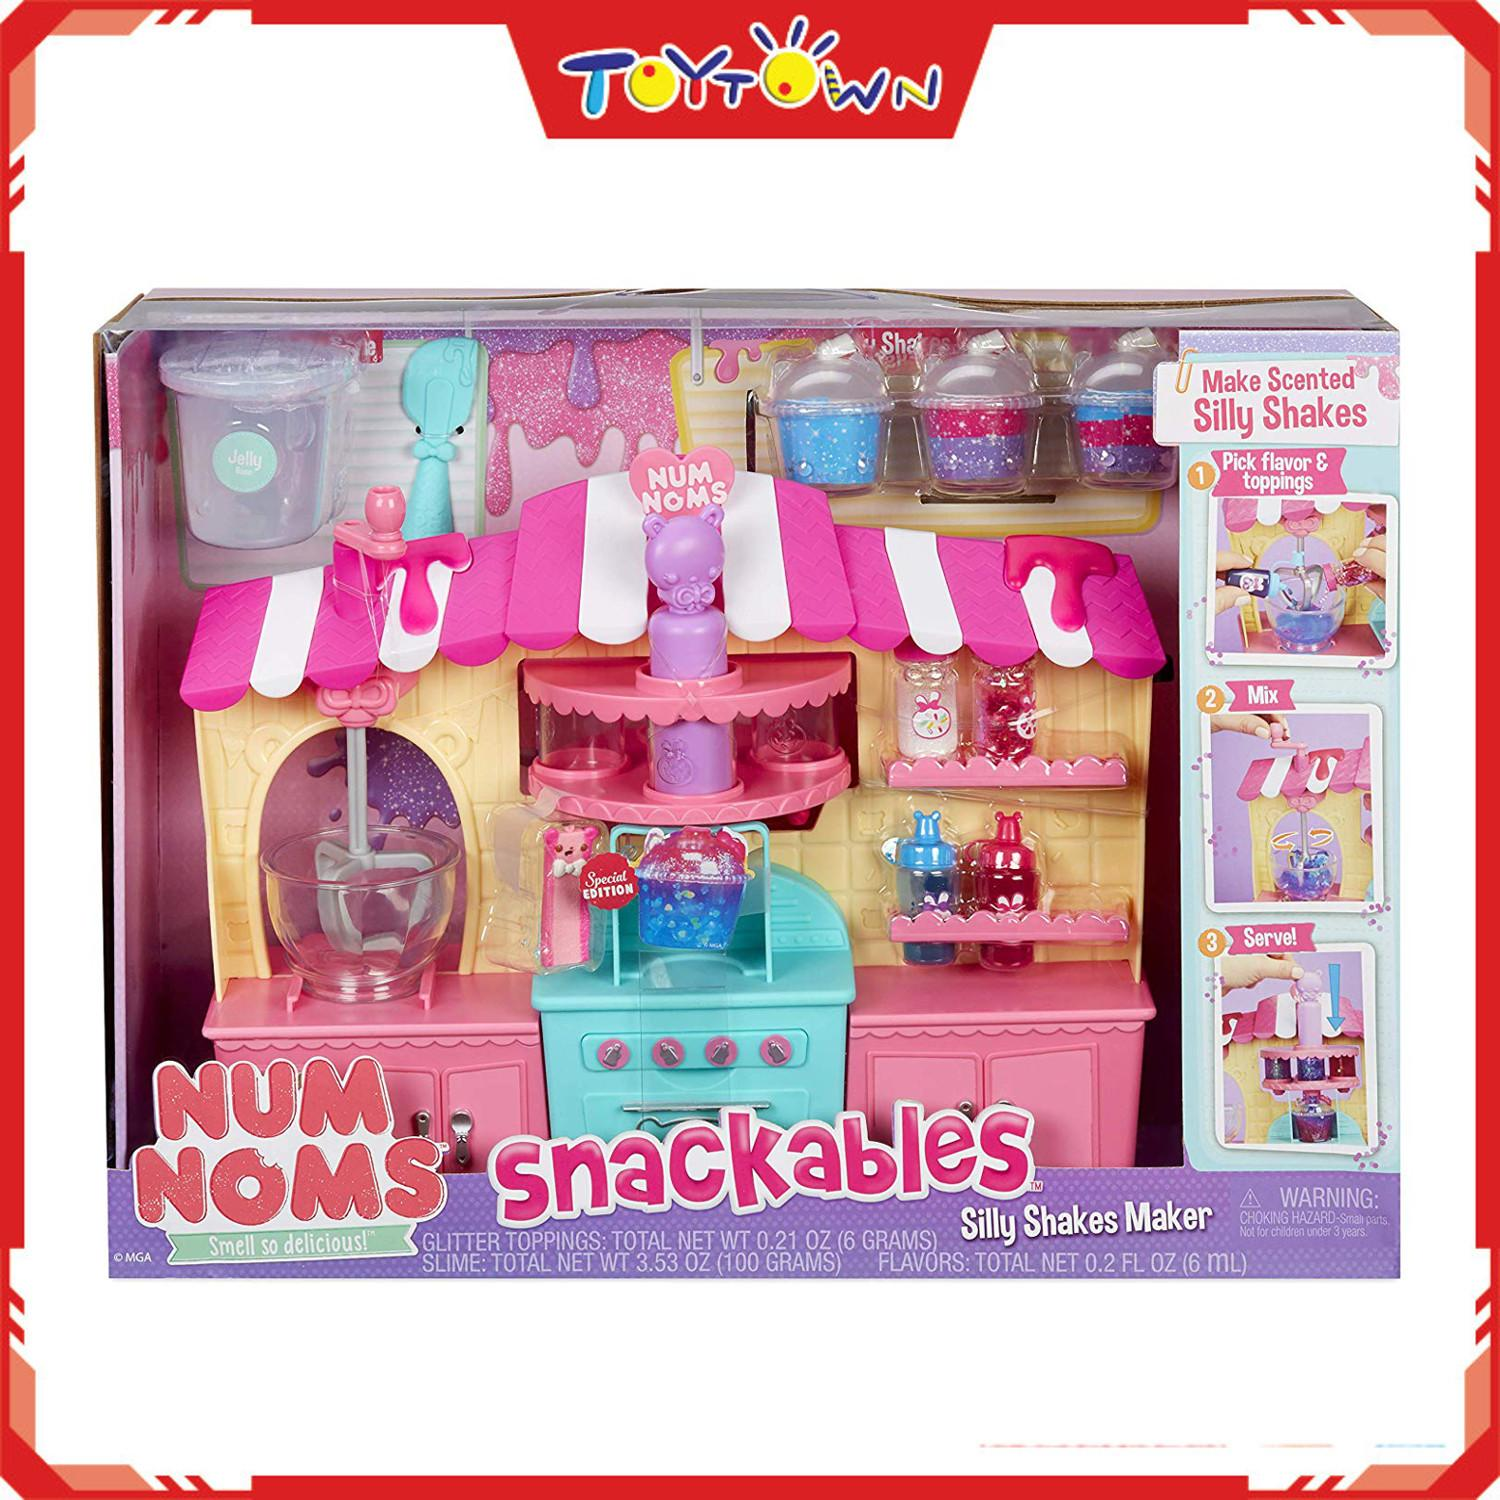 Num Noms Snackers Silly Shakes Maker